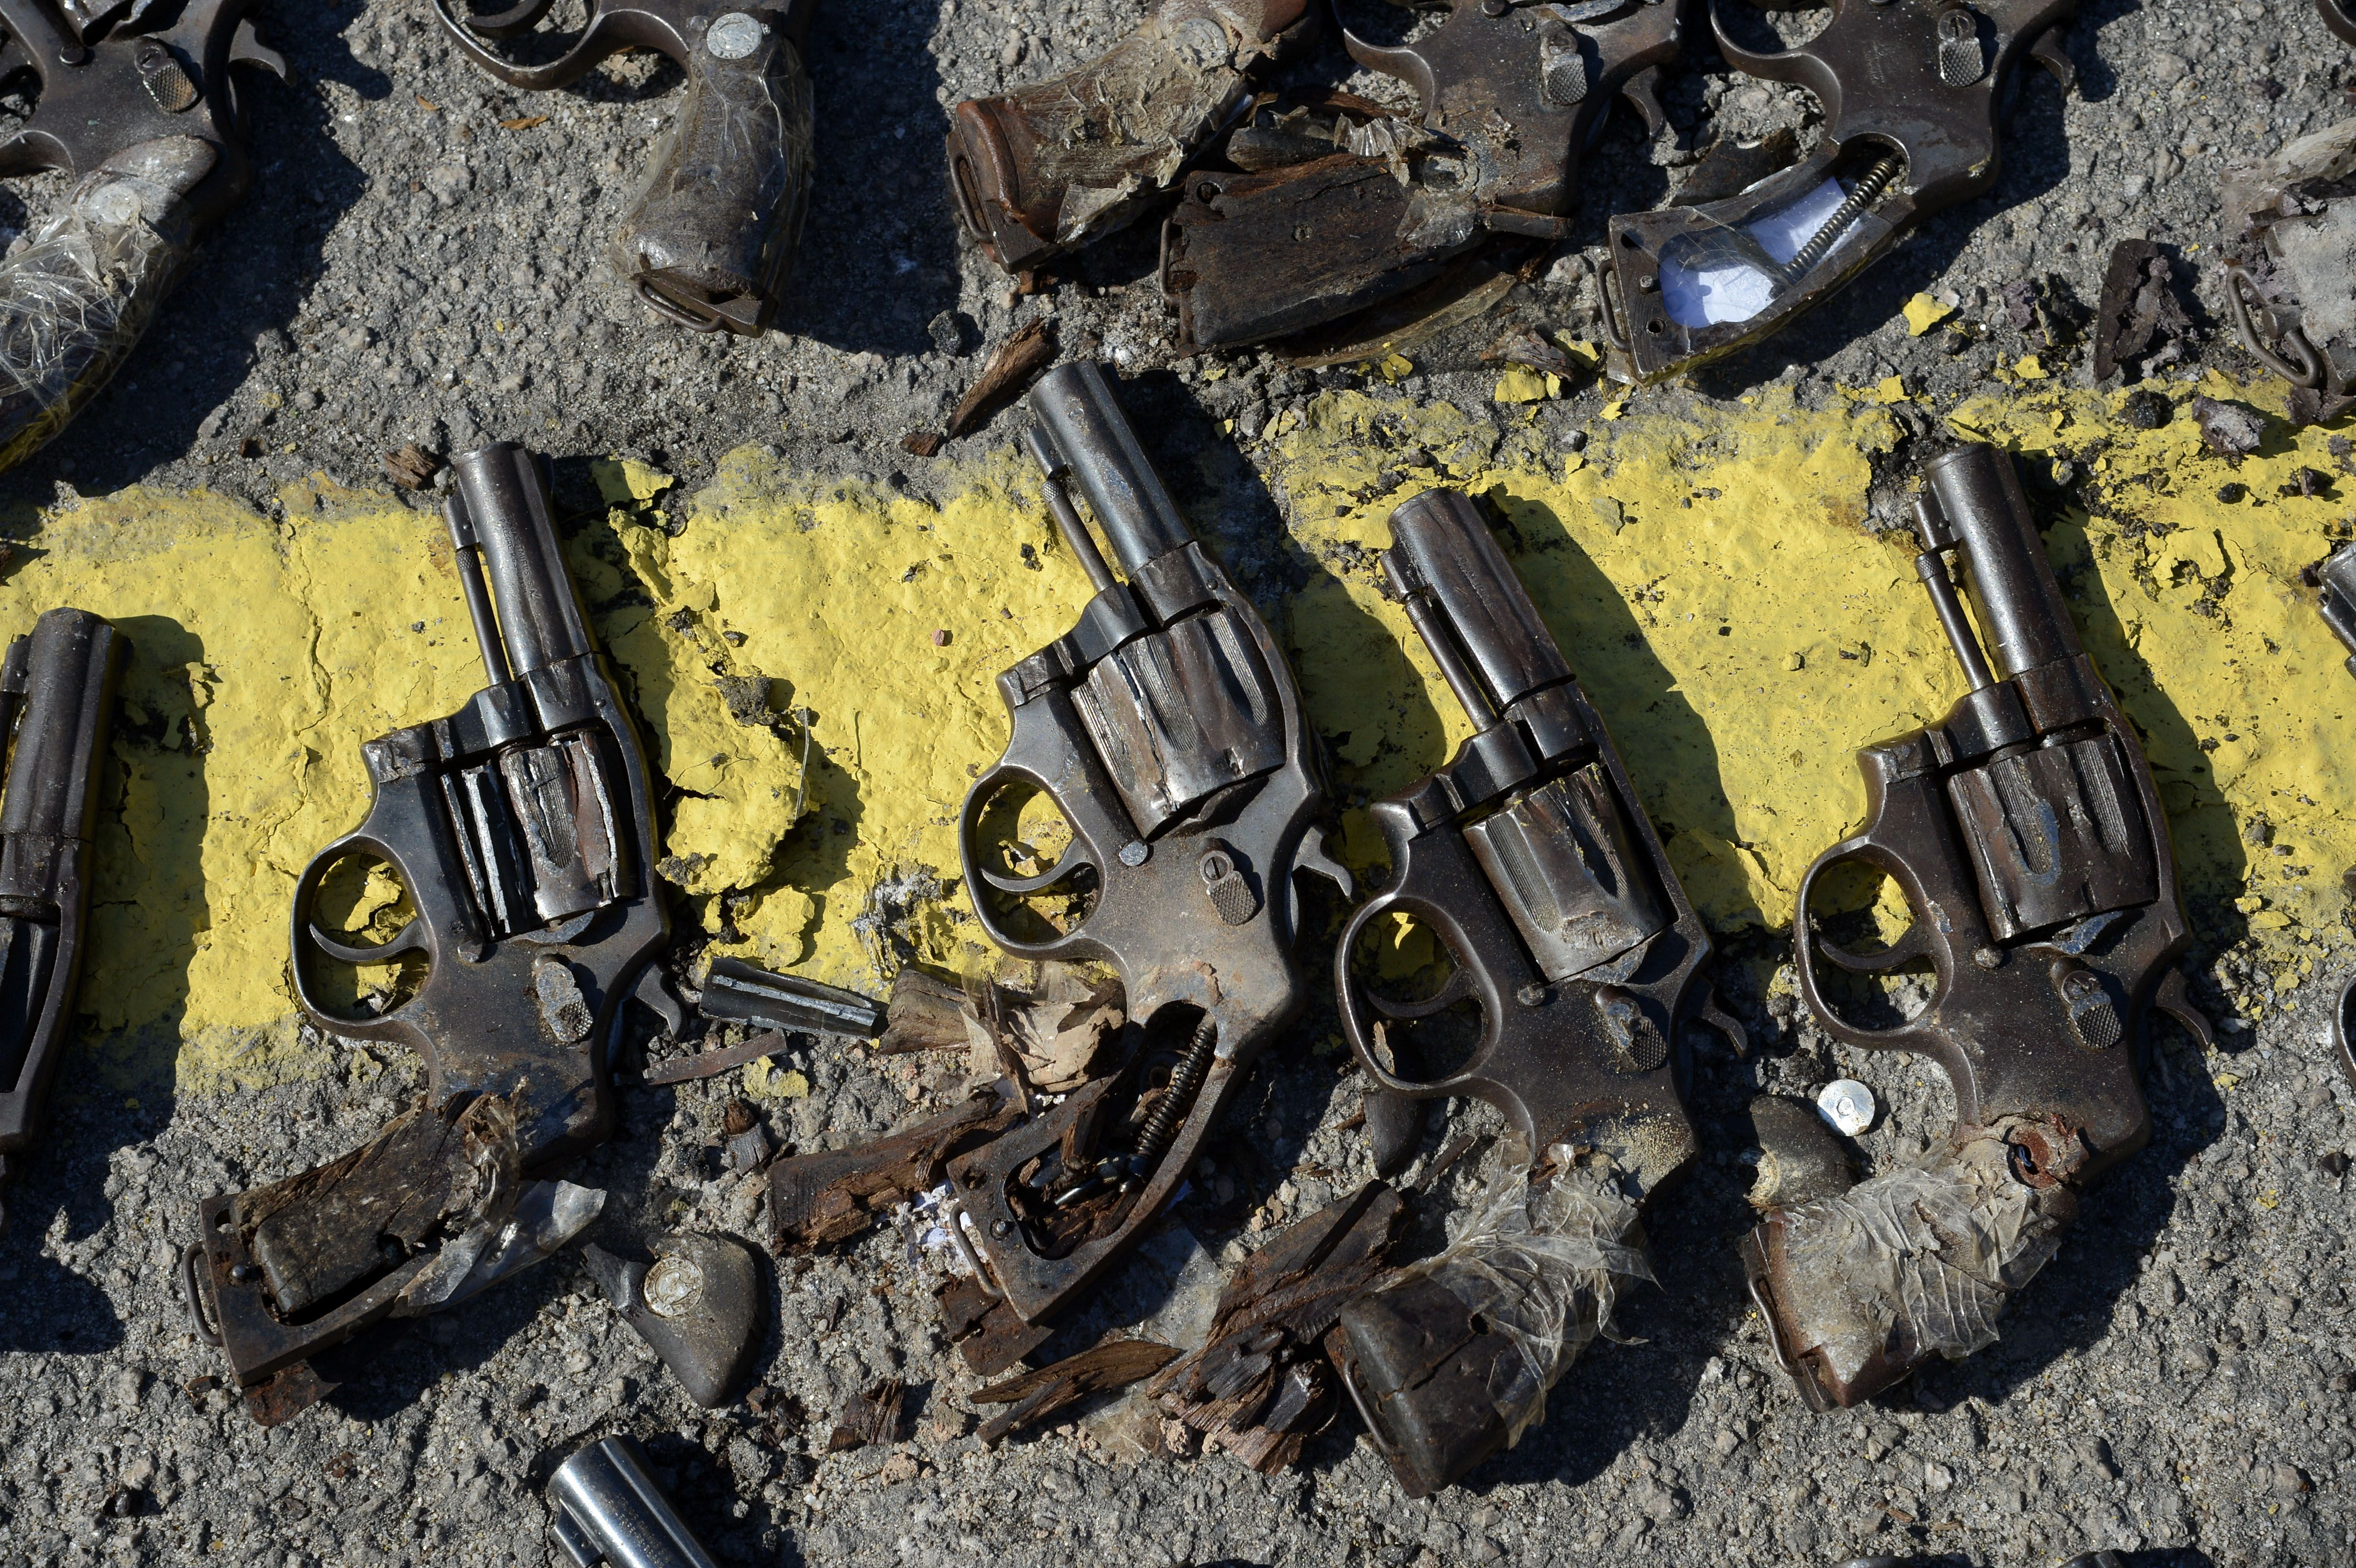 Obsolete and unusable weapons taken to be destroyed by the Army. Photo: Tânia Rego/Agência Brasil)